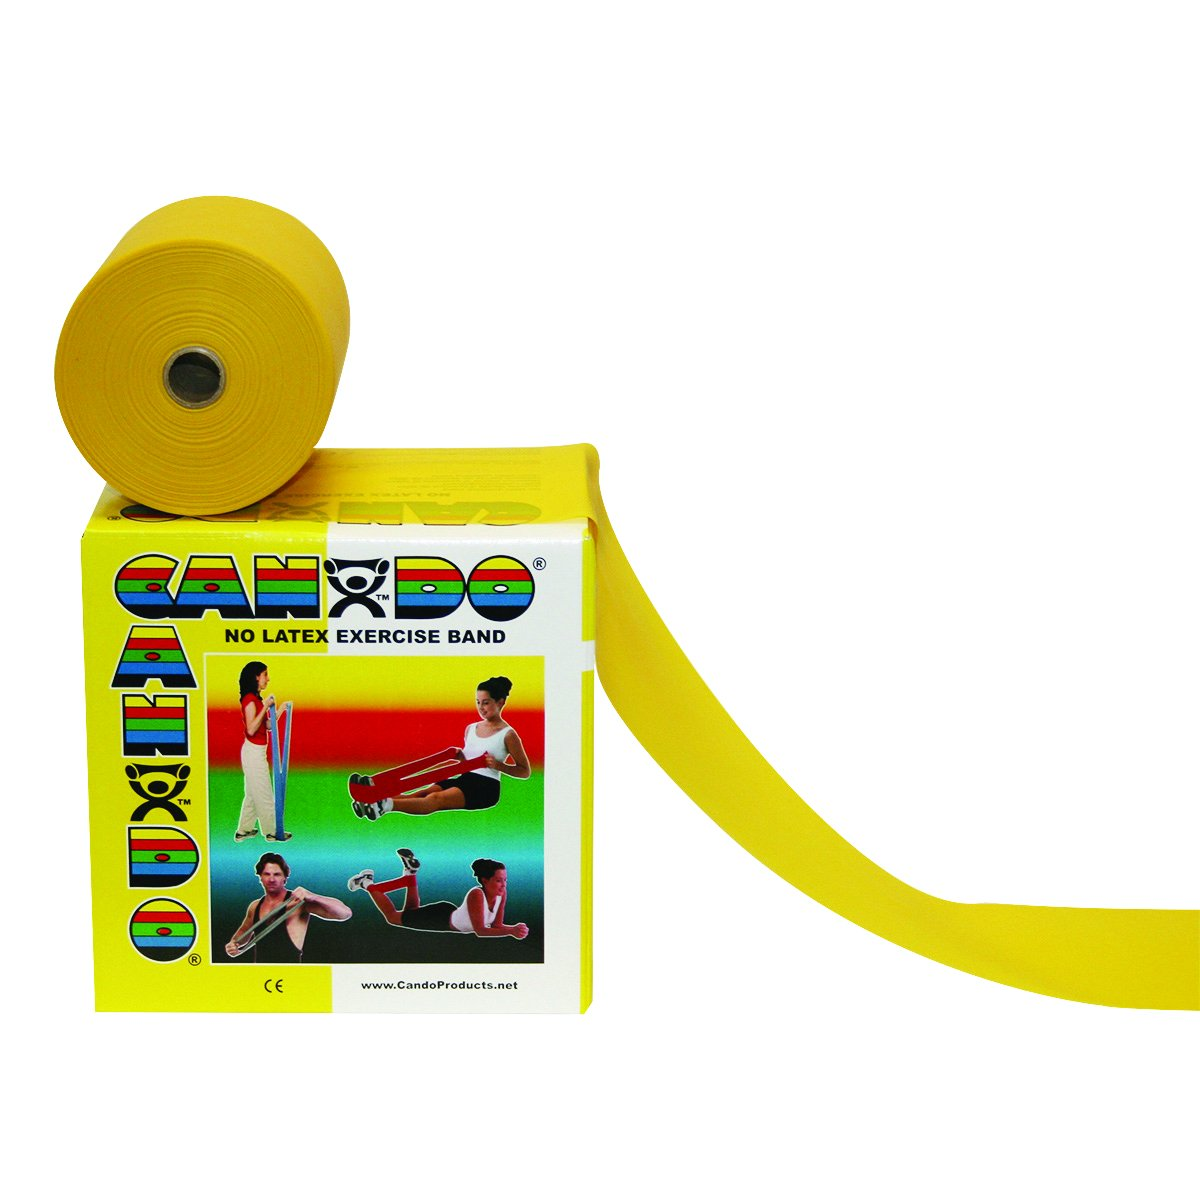 Cando 10-5621 Yellow Latex-Free Exercise Band, X-Light Resistance, 50 yd Length